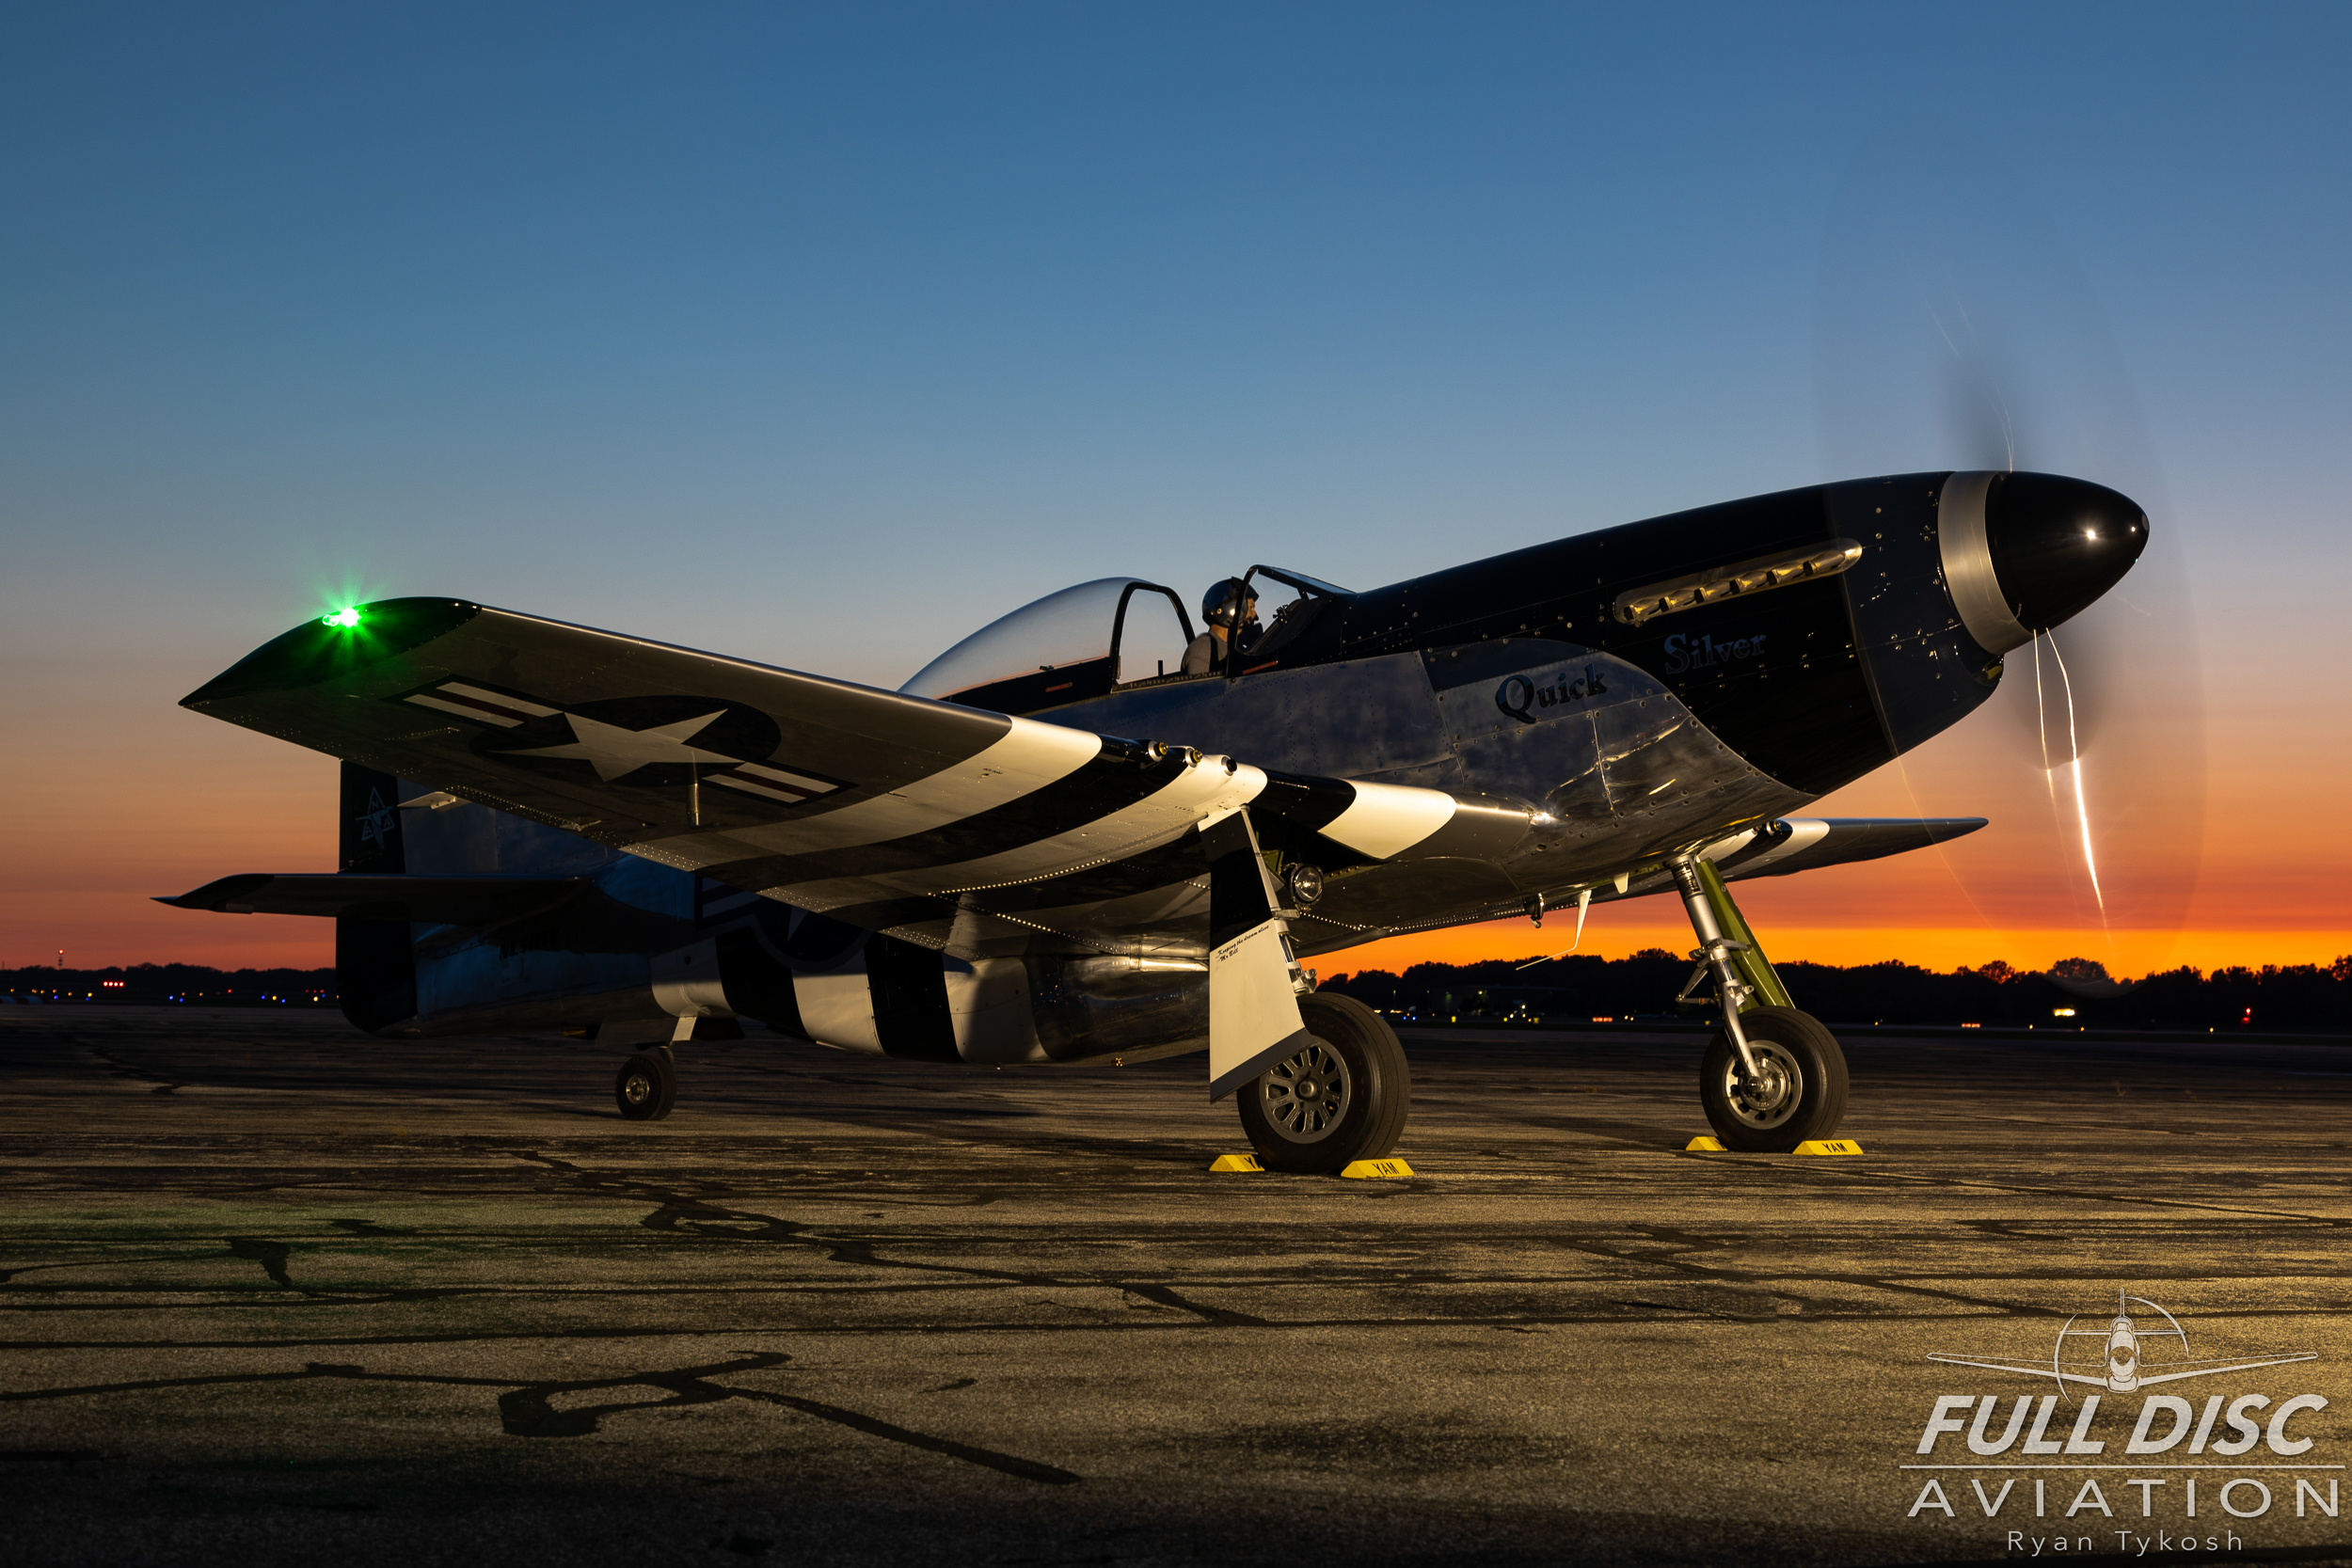 ClassOf45_FullDiscAviation_RyanTykosh_August 01, 2019_06.jpg